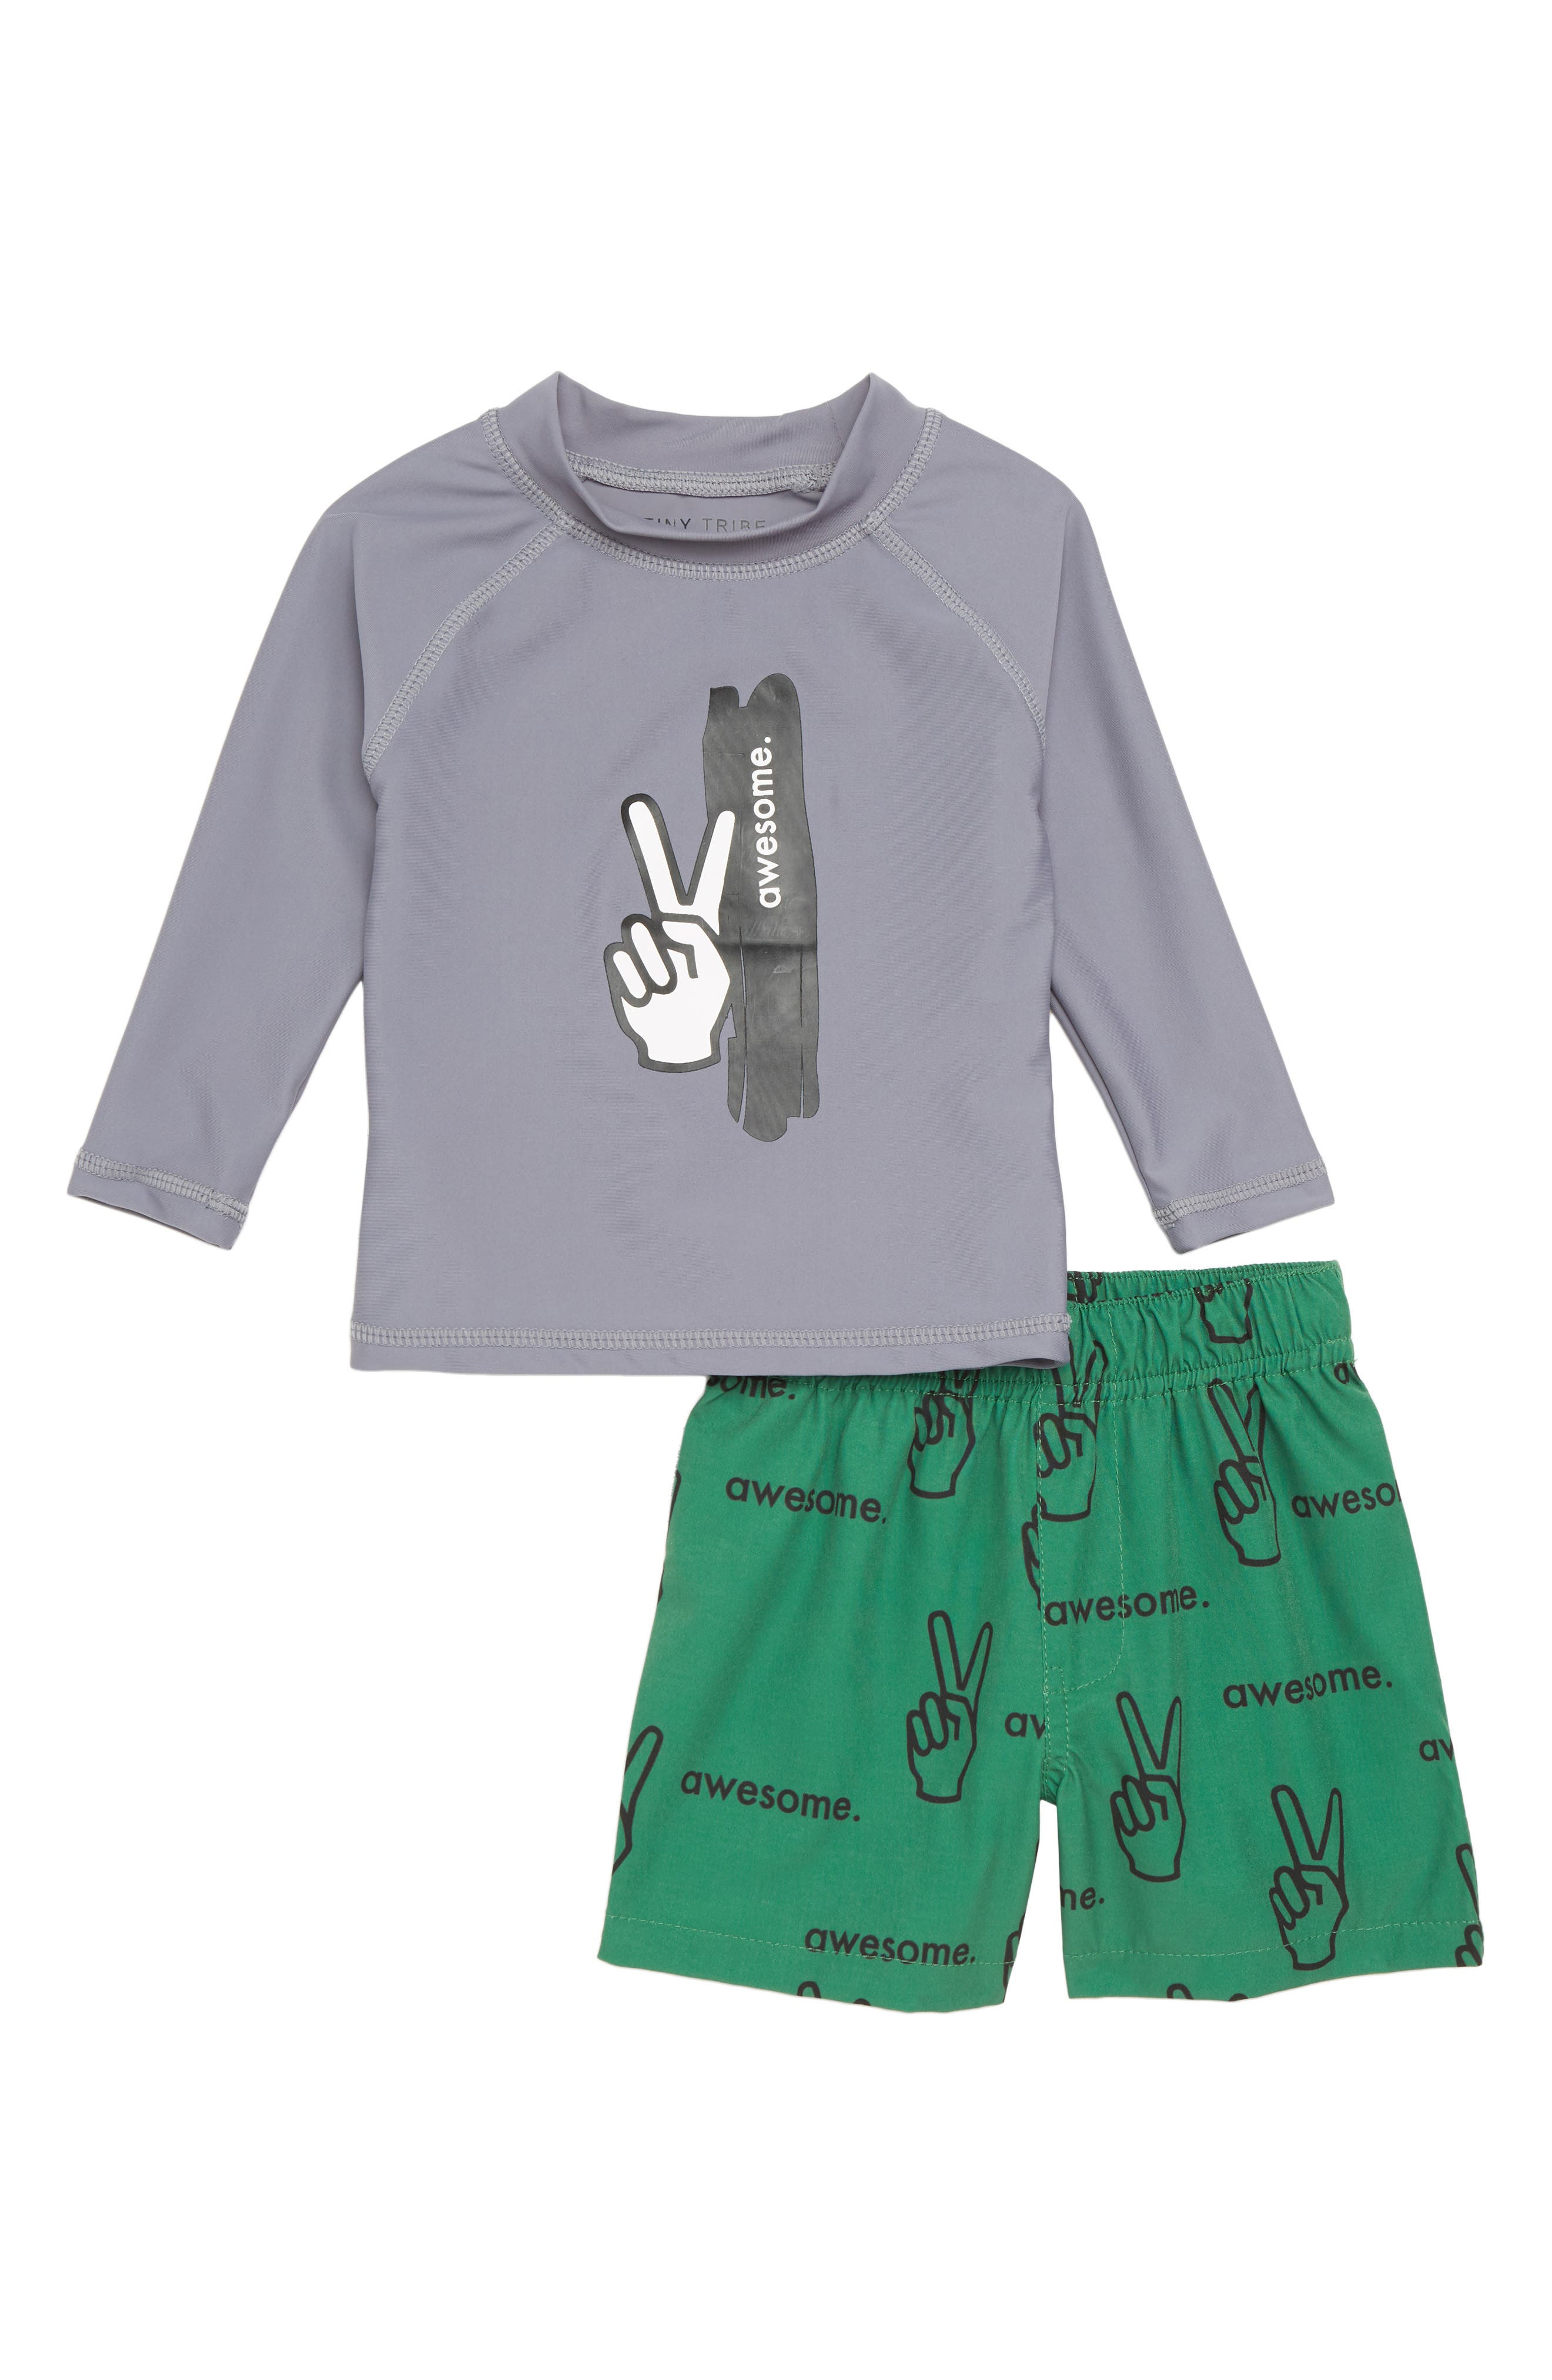 Boys are Awesome Two-Piece Rashguard Swimsuit,                         Main,                         color, 039